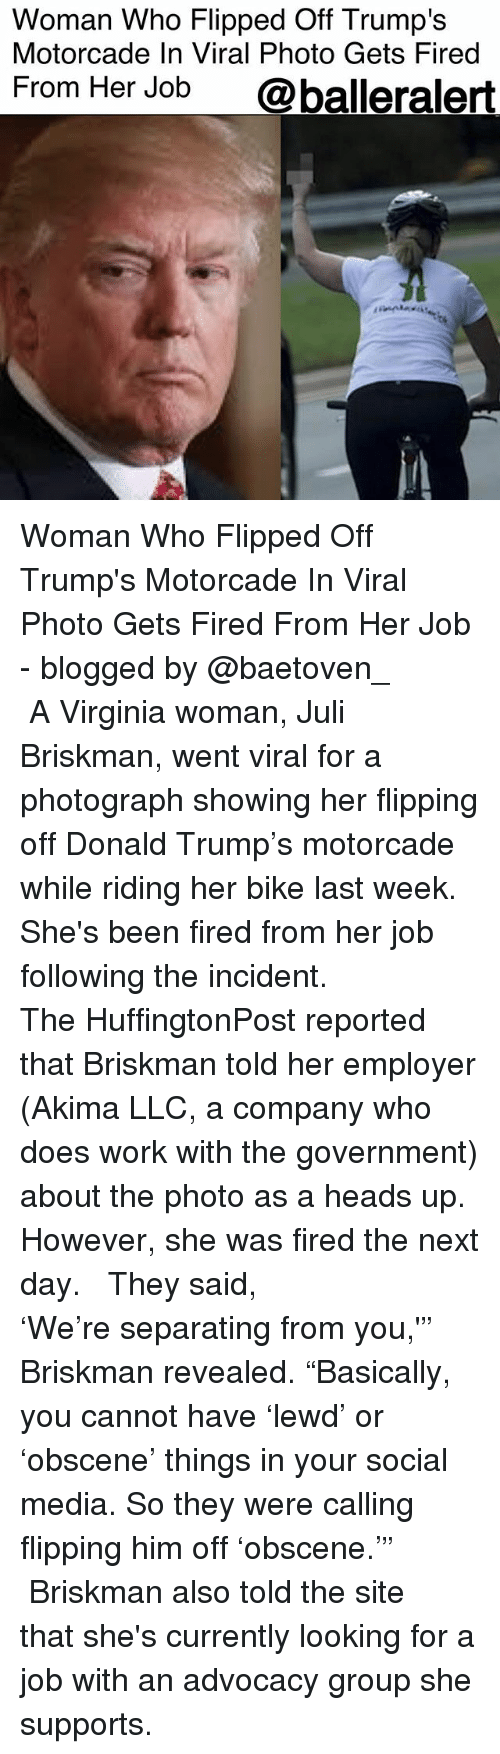 "Juli: Woman Who Flipped Off Trump's  Motorcade In Viral Photo Gets Fired  From Her Job  @balleralert Woman Who Flipped Off Trump's Motorcade In Viral Photo Gets Fired From Her Job - blogged by @baetoven_ ⠀⠀⠀⠀⠀⠀⠀ ⠀⠀⠀⠀⠀⠀⠀ A Virginia woman, Juli Briskman, went viral for a photograph showing her flipping off Donald Trump's motorcade while riding her bike last week. She's been fired from her job following the incident. ⠀⠀⠀⠀⠀⠀⠀ ⠀⠀⠀⠀⠀⠀⠀ The HuffingtonPost reported that Briskman told her employer (Akima LLC, a company who does work with the government) about the photo as a heads up. However, she was fired the next day. ⠀⠀⠀⠀⠀⠀⠀ ⠀⠀⠀⠀⠀⠀⠀ They said, 'We're separating from you,'"" Briskman revealed. ""Basically, you cannot have 'lewd' or 'obscene' things in your social media. So they were calling flipping him off 'obscene.'"" ⠀⠀⠀⠀⠀⠀⠀ ⠀⠀⠀⠀⠀⠀⠀ Briskman also told the site that she's currently looking for a job with an advocacy group she supports."